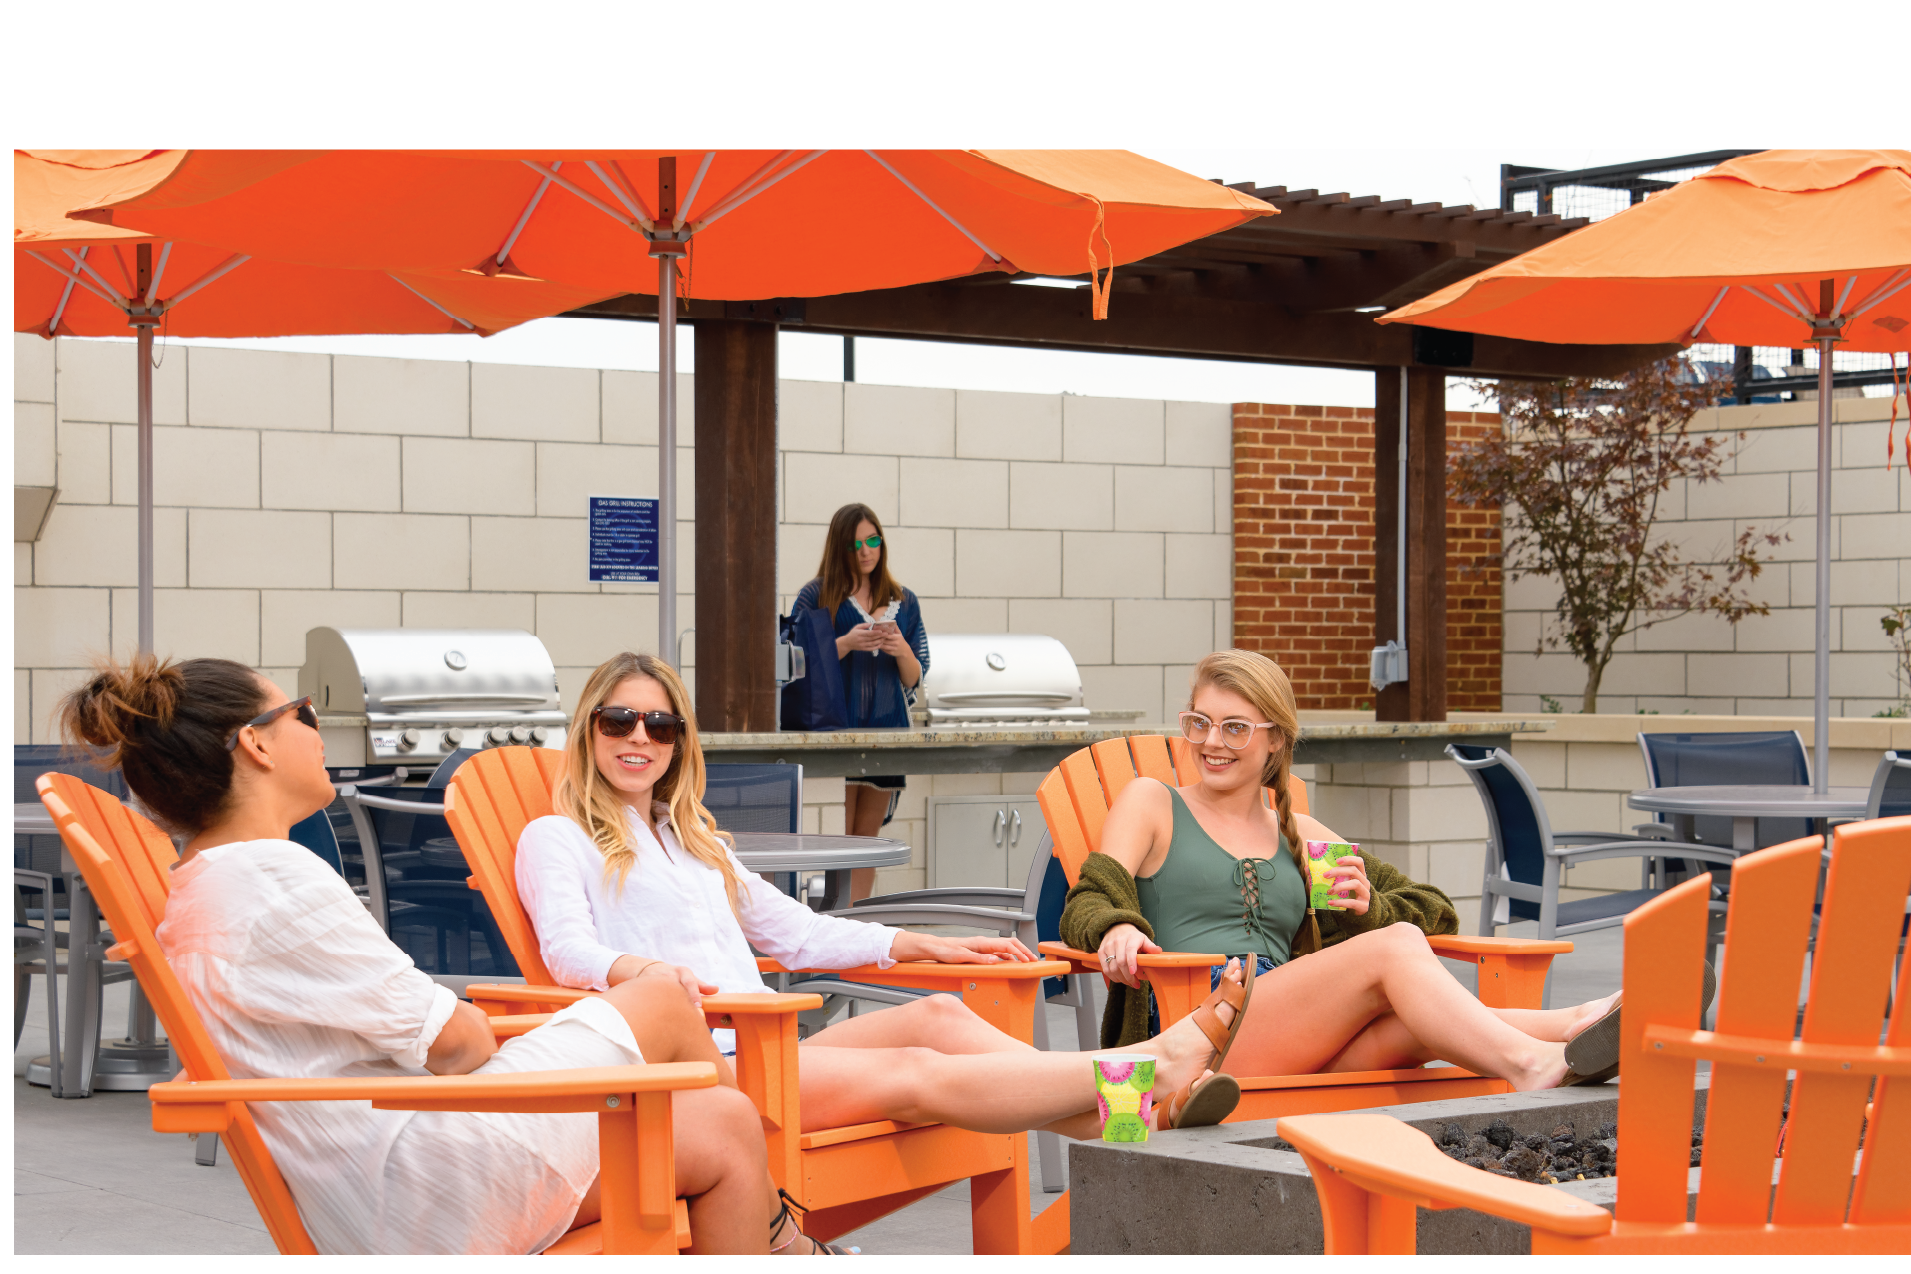 Standard Raleigh, residents lounging in courtyard